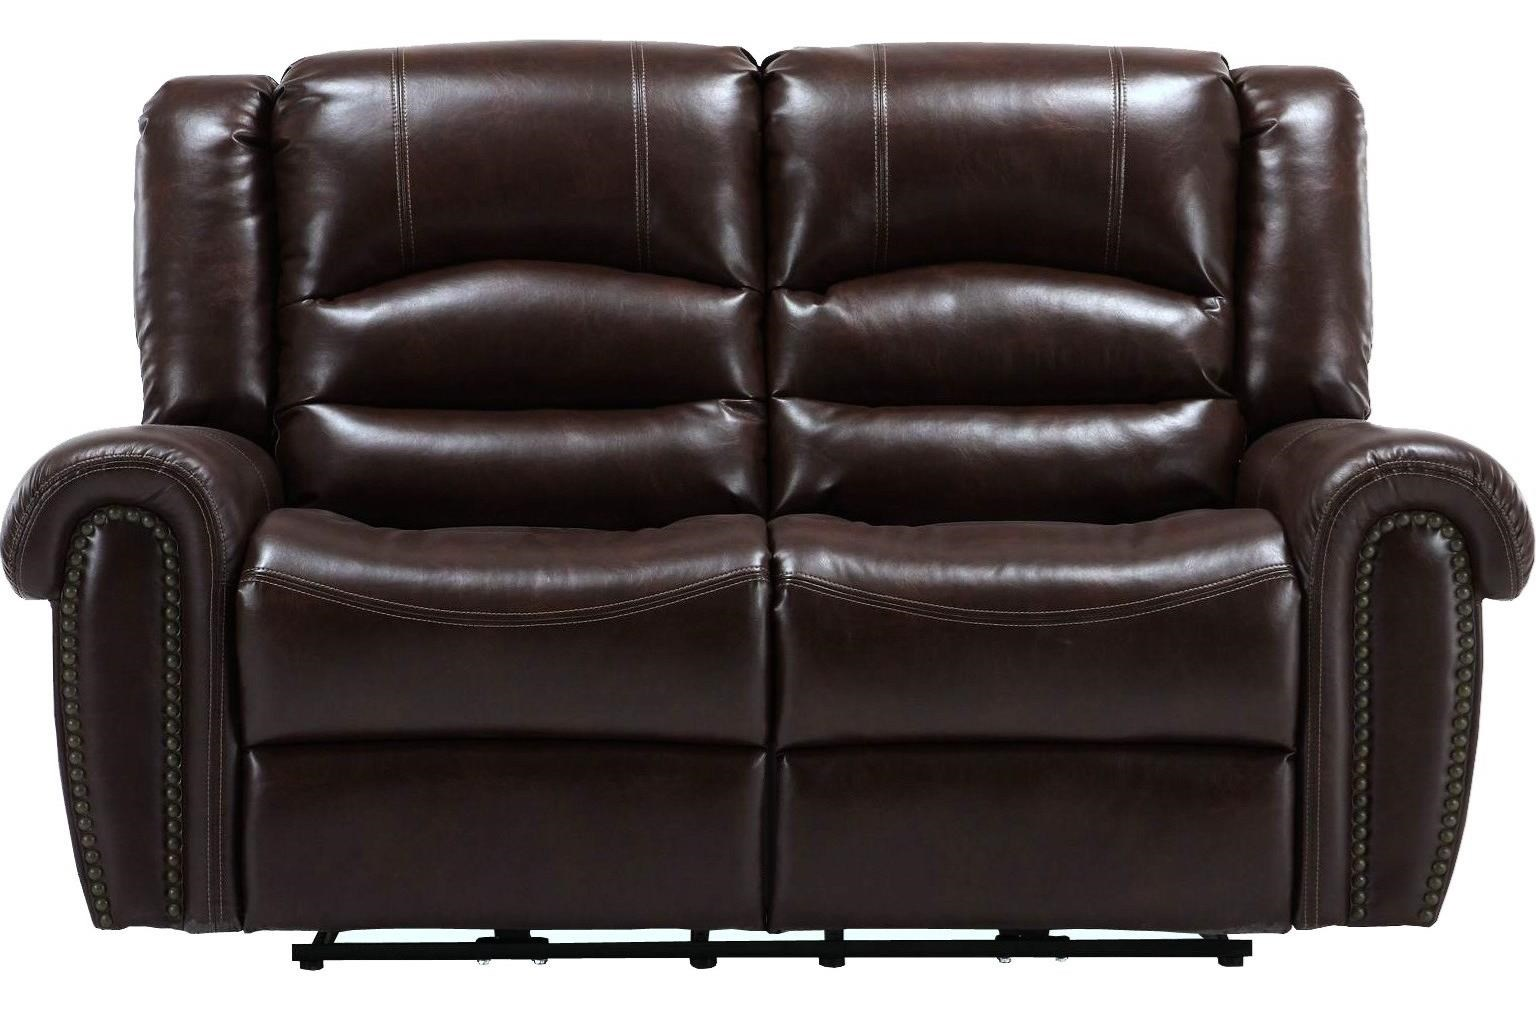 Parker Living Gershwin Power Reclining Dual Loveseat - Item Number: MGER-822P-JA